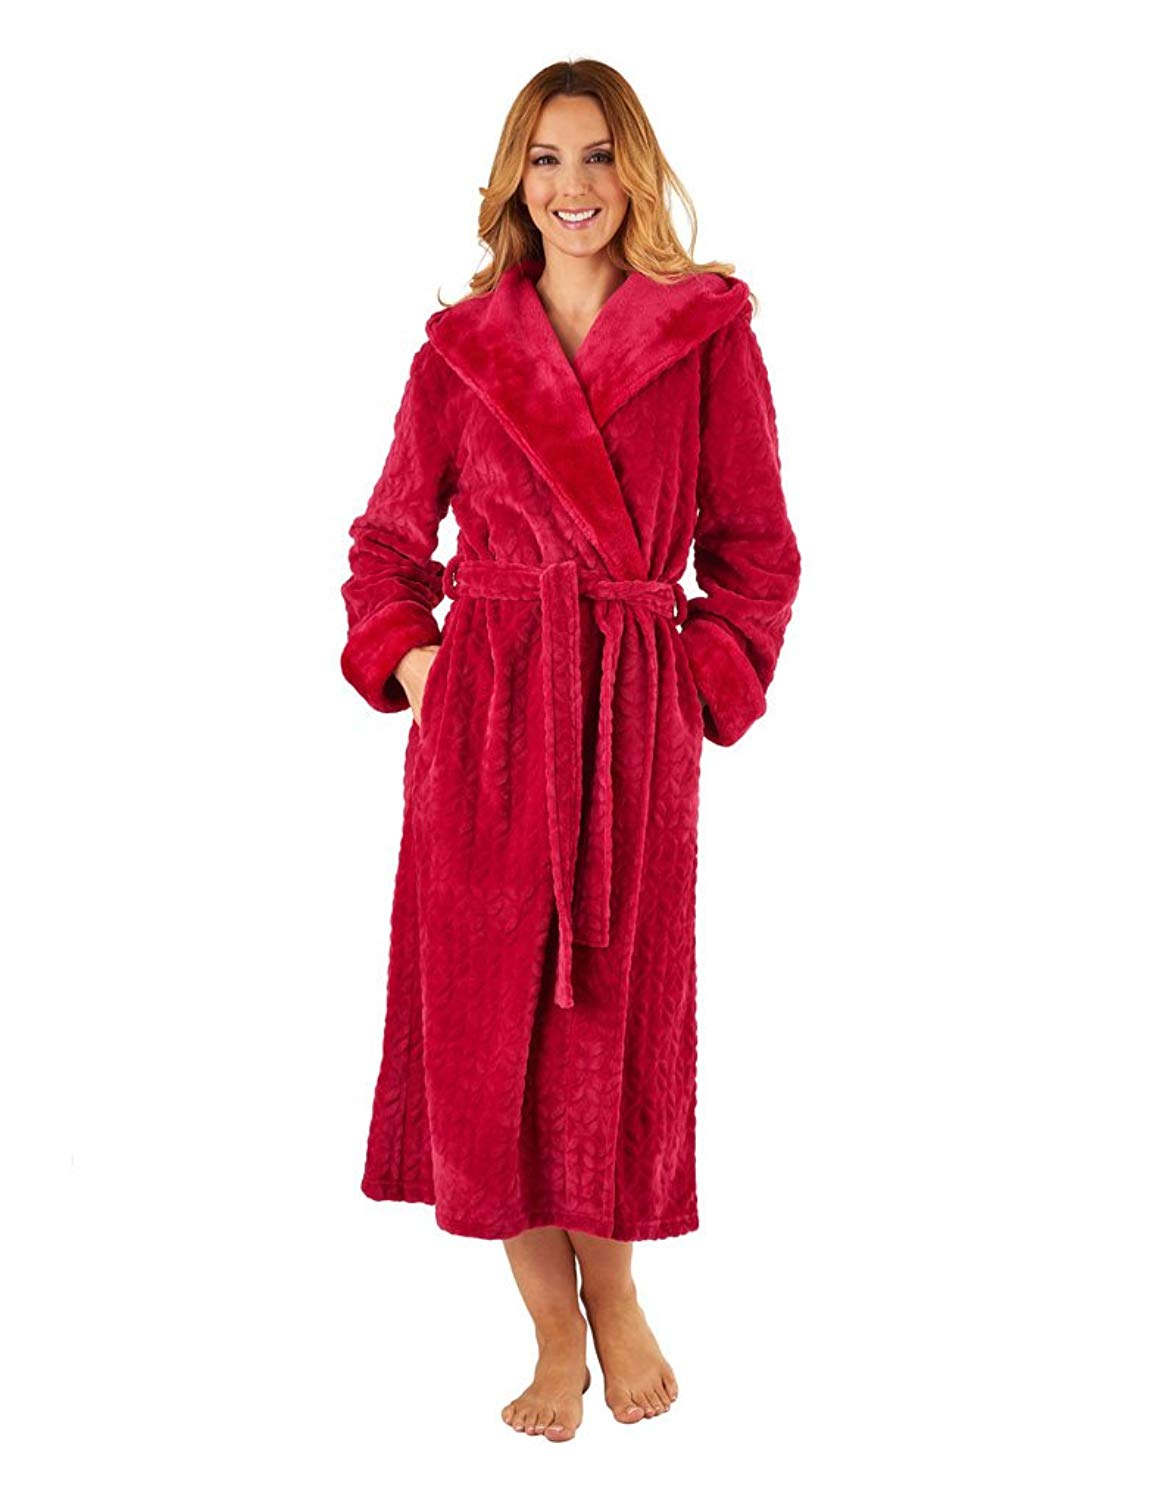 0649d862ae Get Quotations · Slenderella HC8333 Women s Raspberry Red Long Sleeve Robe  Dressing Gown